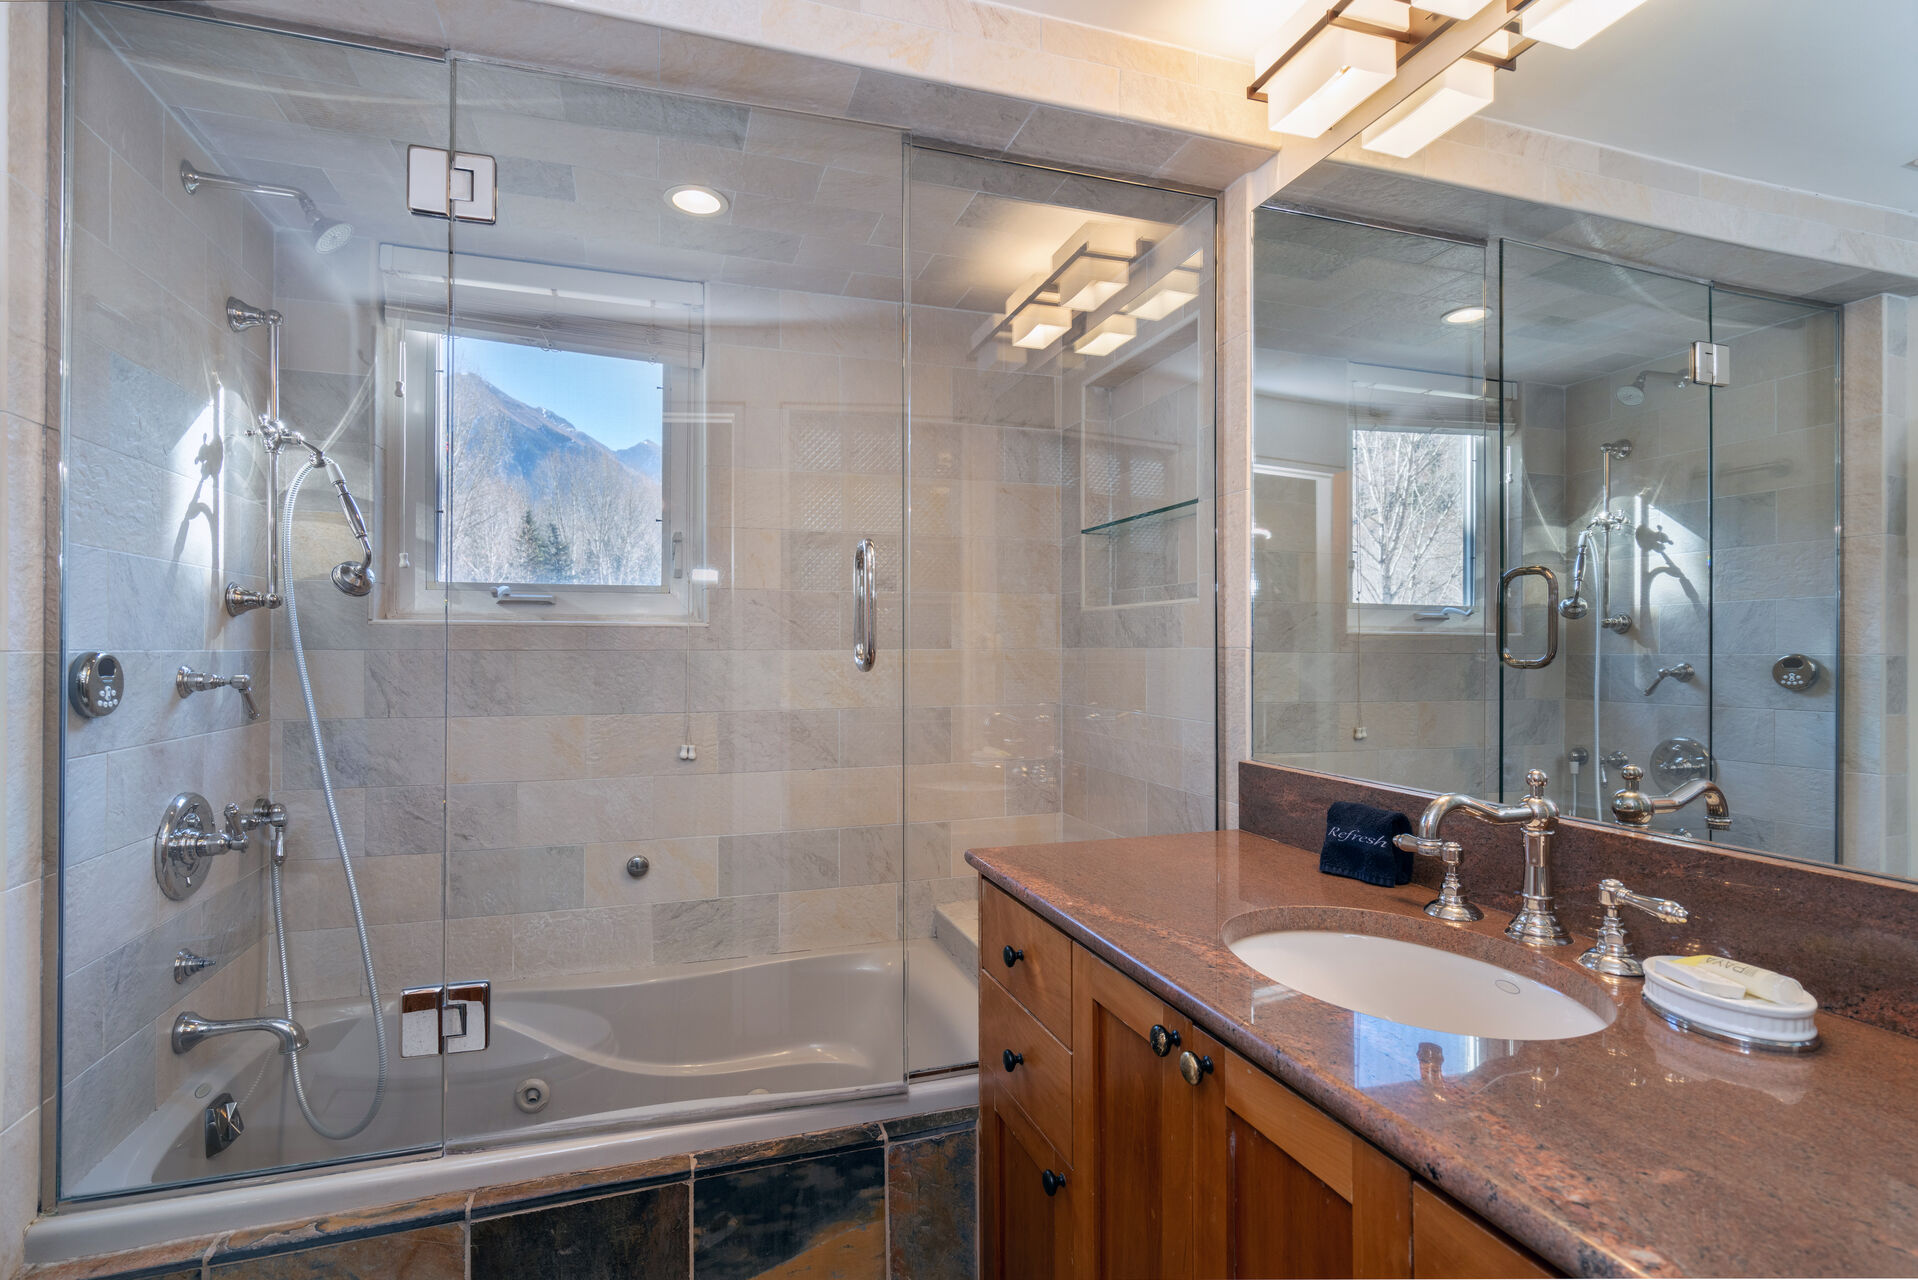 A walk in shower/tub and a sink